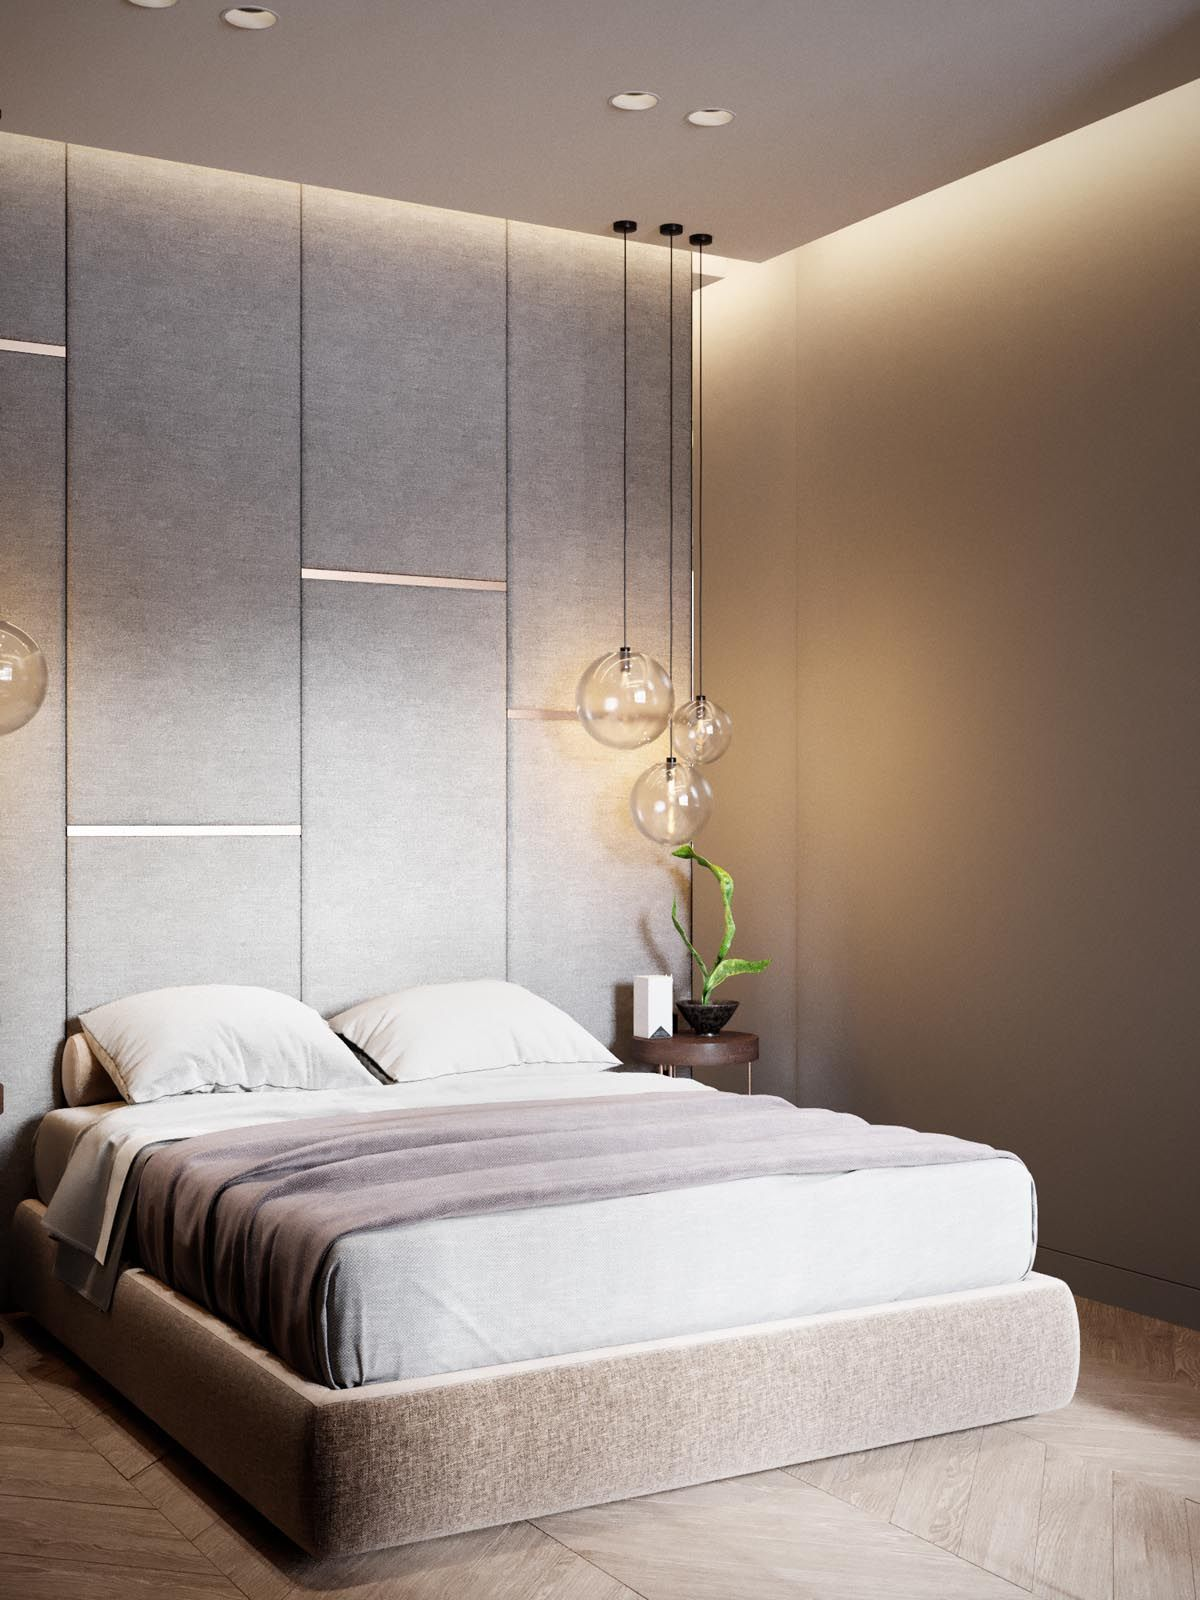 Home Design Under 60 Square Meters 3 Examples That Incorporate Luxury In Small Spaces Bedroom Decor Inspiration Home Decor College Apartment Decor Minimalist bedroom design meters